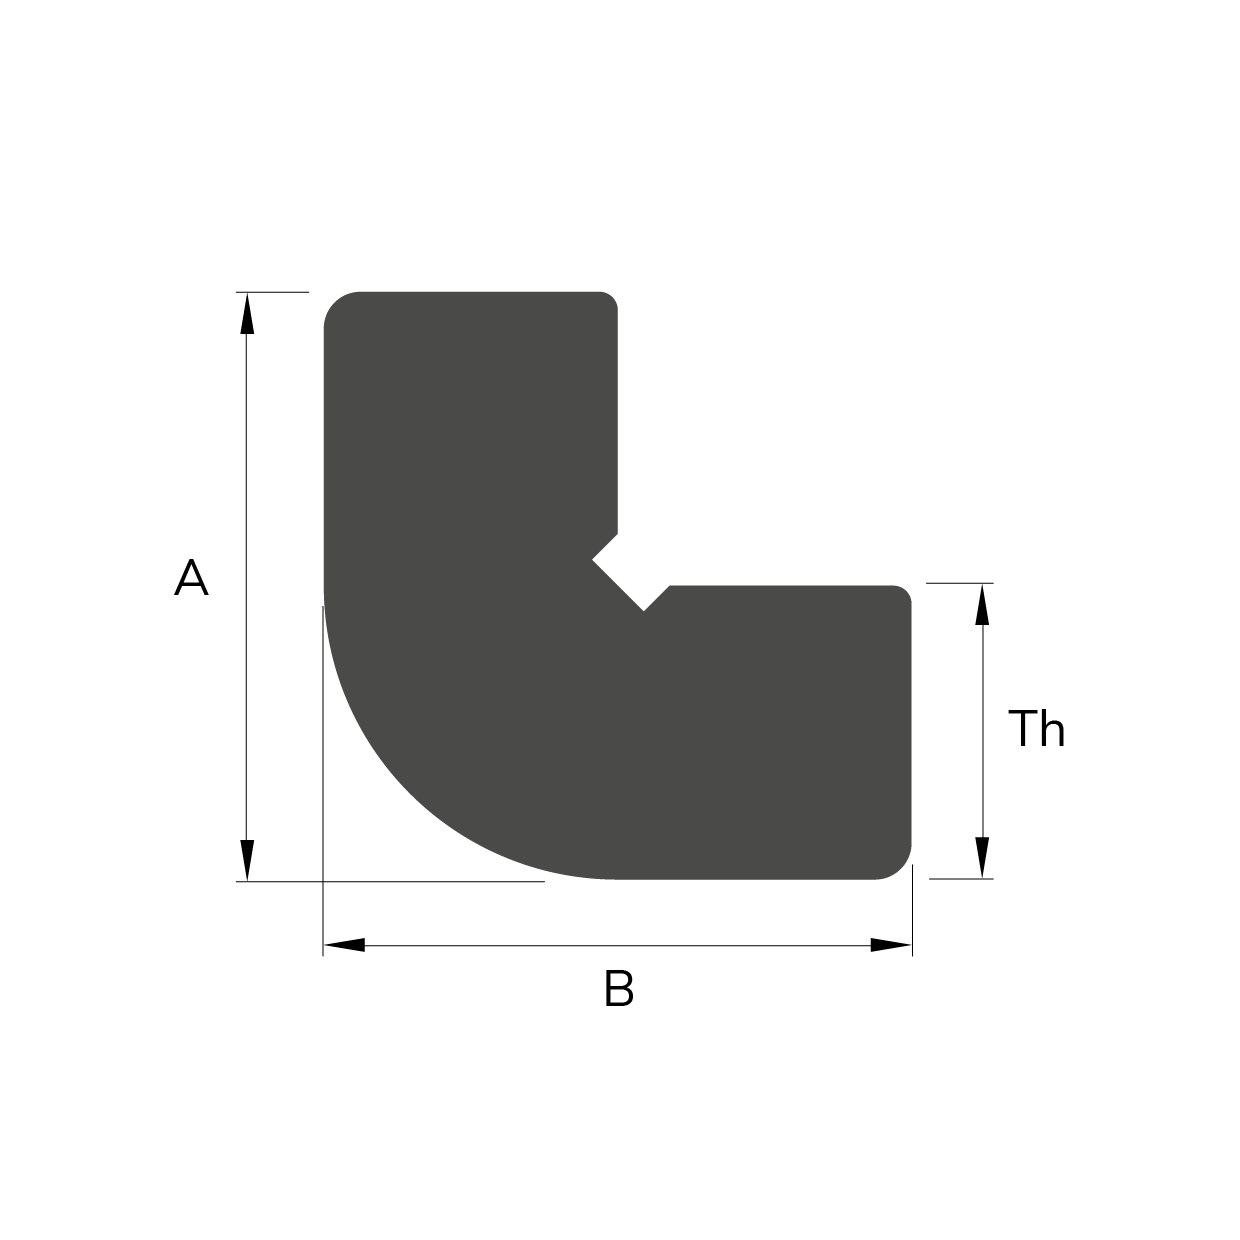 Sezione CORNER PULTRUDED PROFILE, TYPE 1